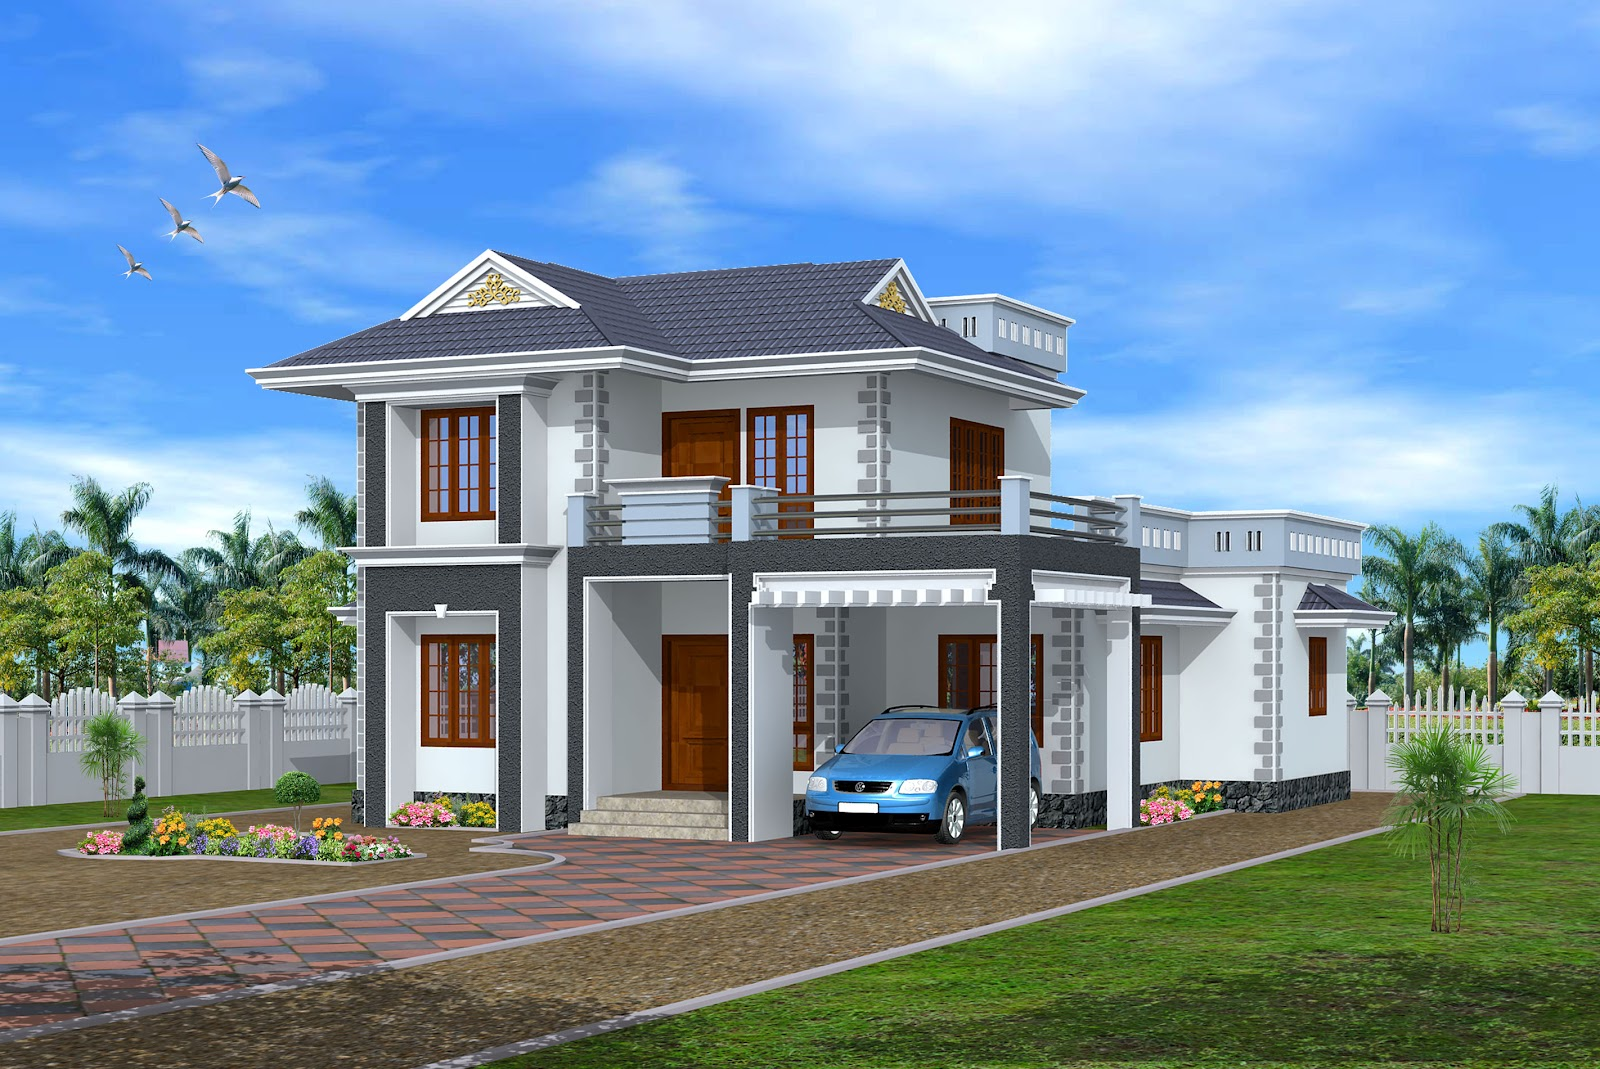 New home designs latest modern homes exterior designs views Home designer 3d